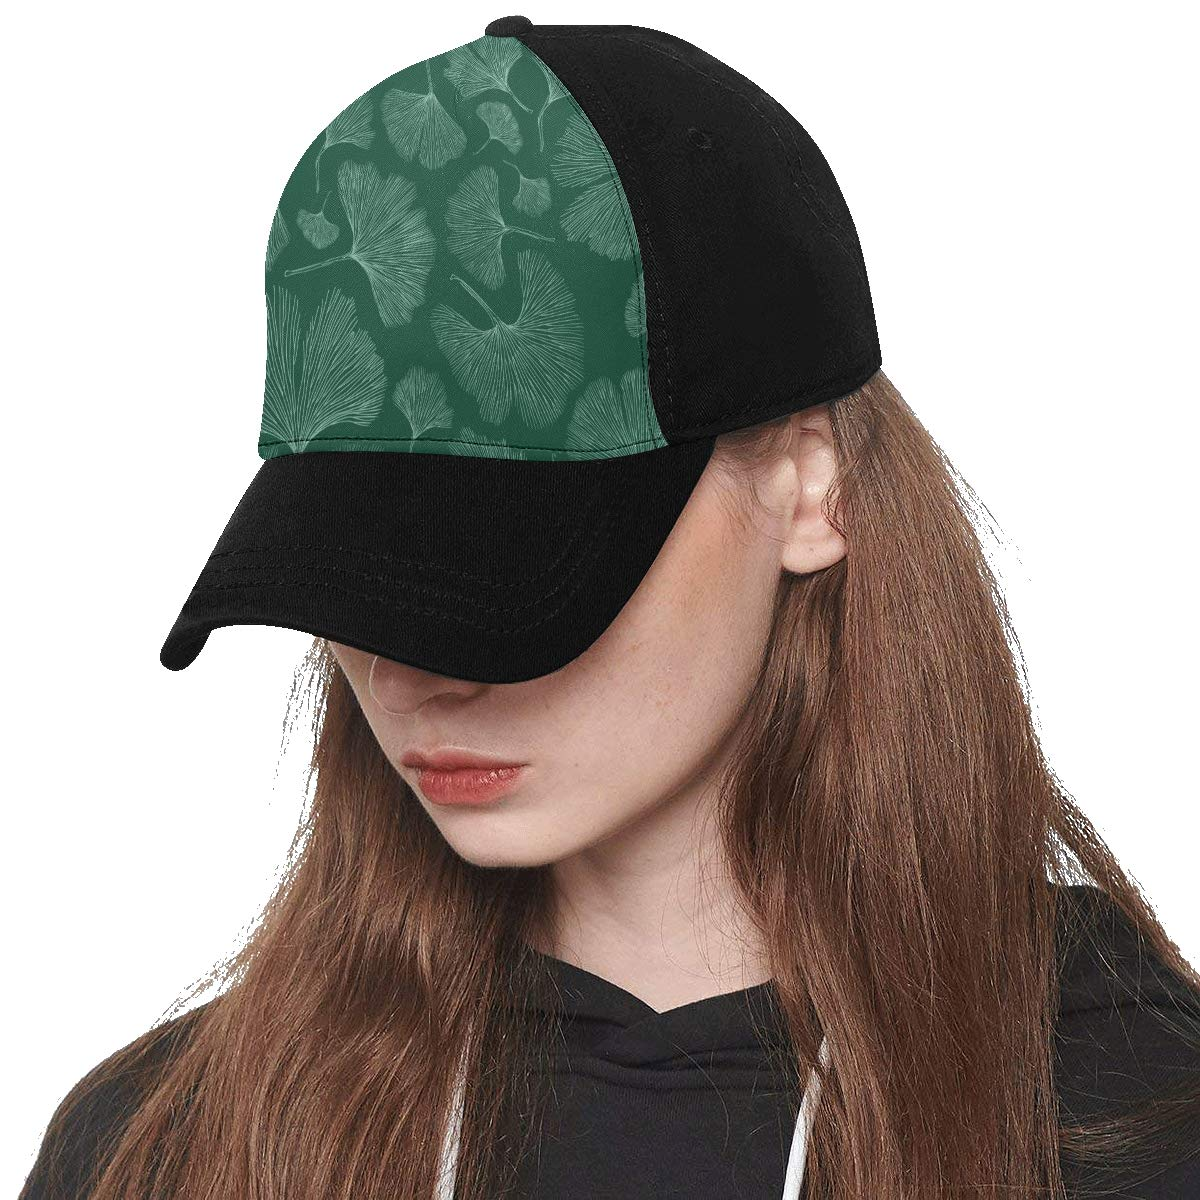 Front Panel Custom Ginseng Medicinal Herbs Natural Printing Baseball Hat Adjustable Size Curved Cap for Hip-hop Sports Summer Beach Outdoor Activities Unisex